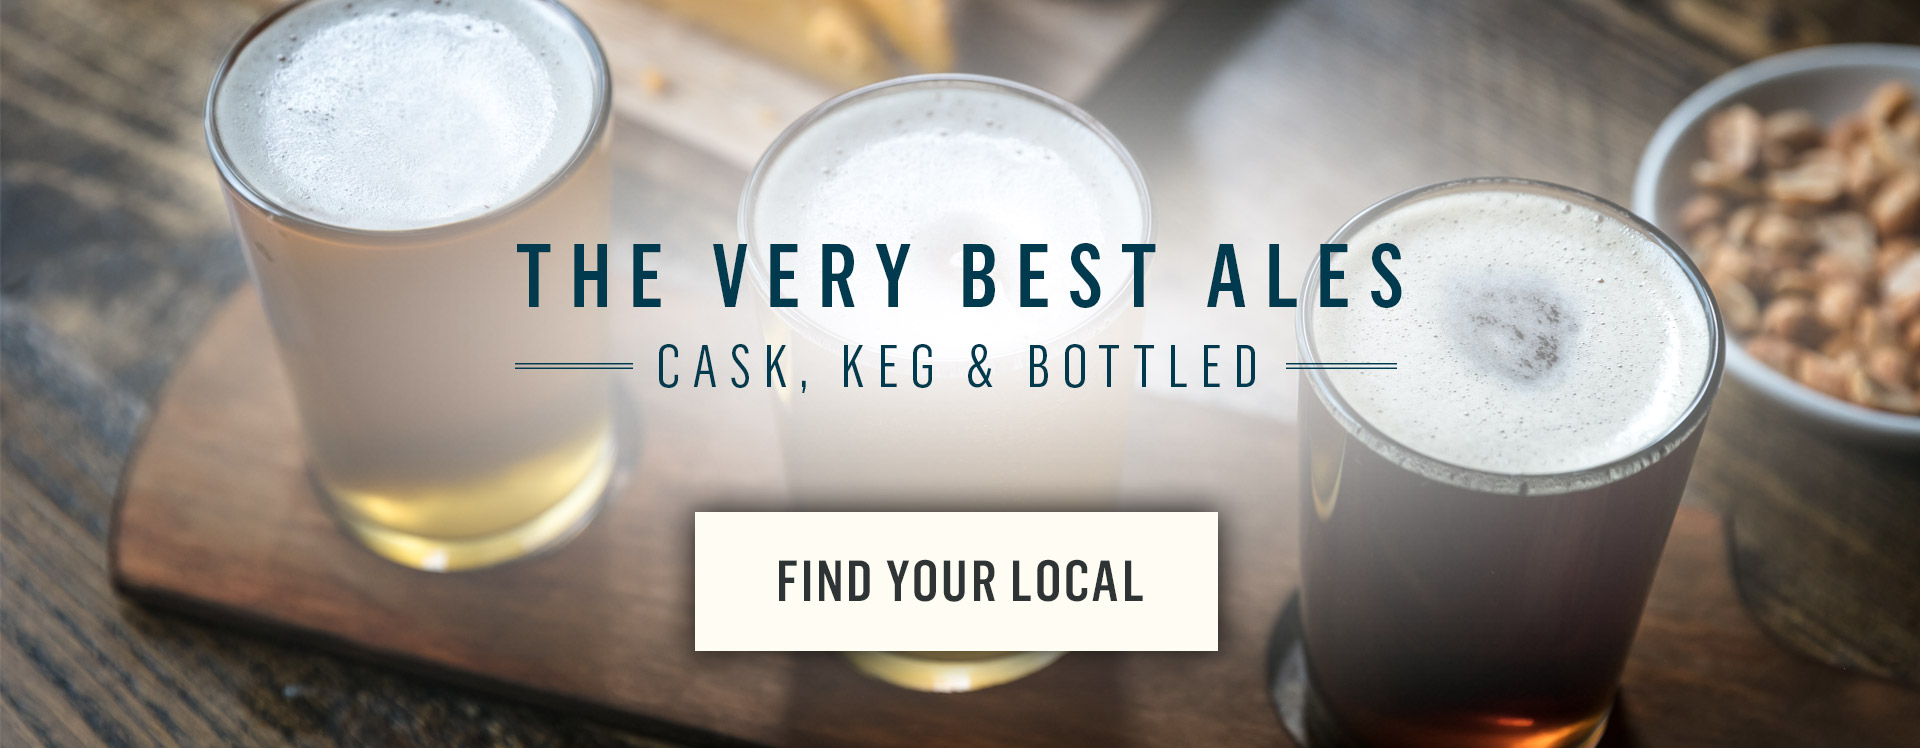 Famous for our ales